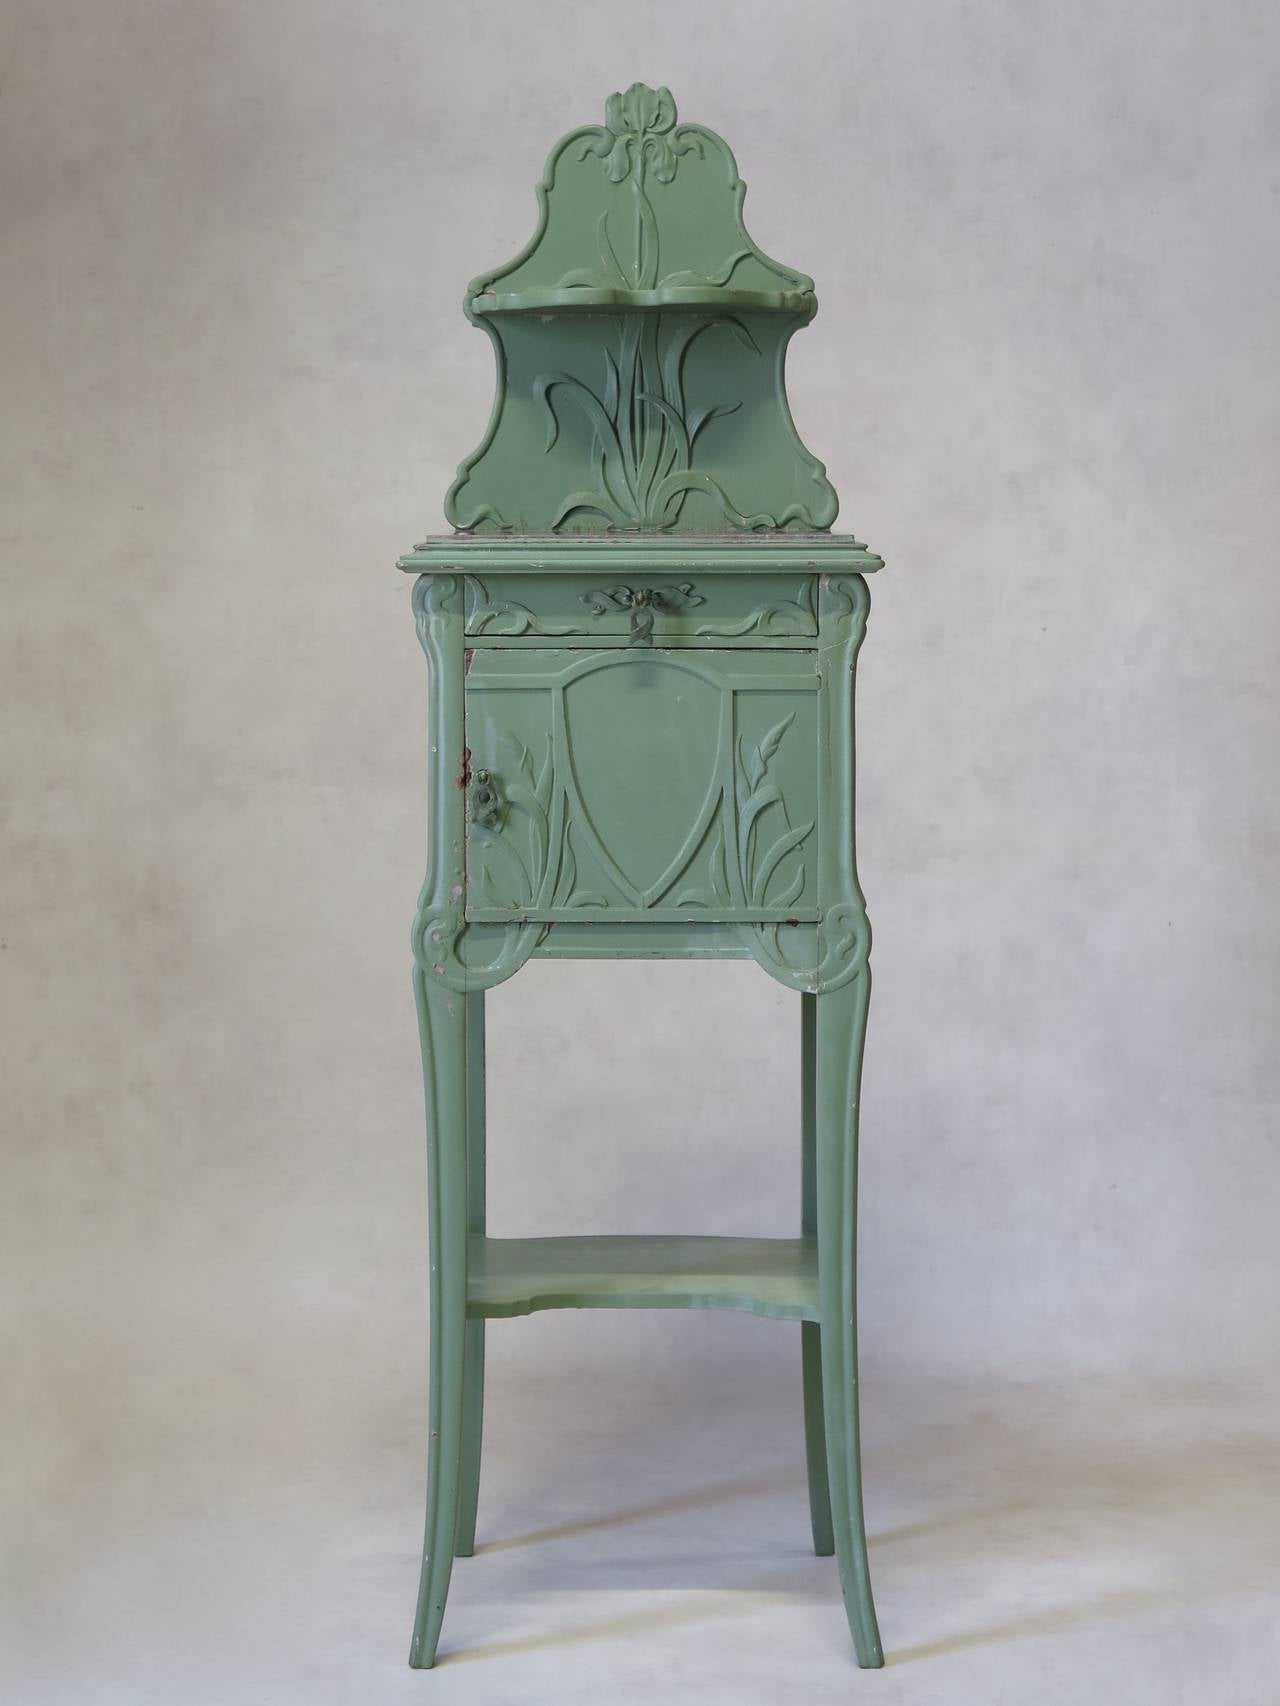 art nouveau bedroom set france early 1900s for sale at best 25 classic furniture ideas on pinterest modern